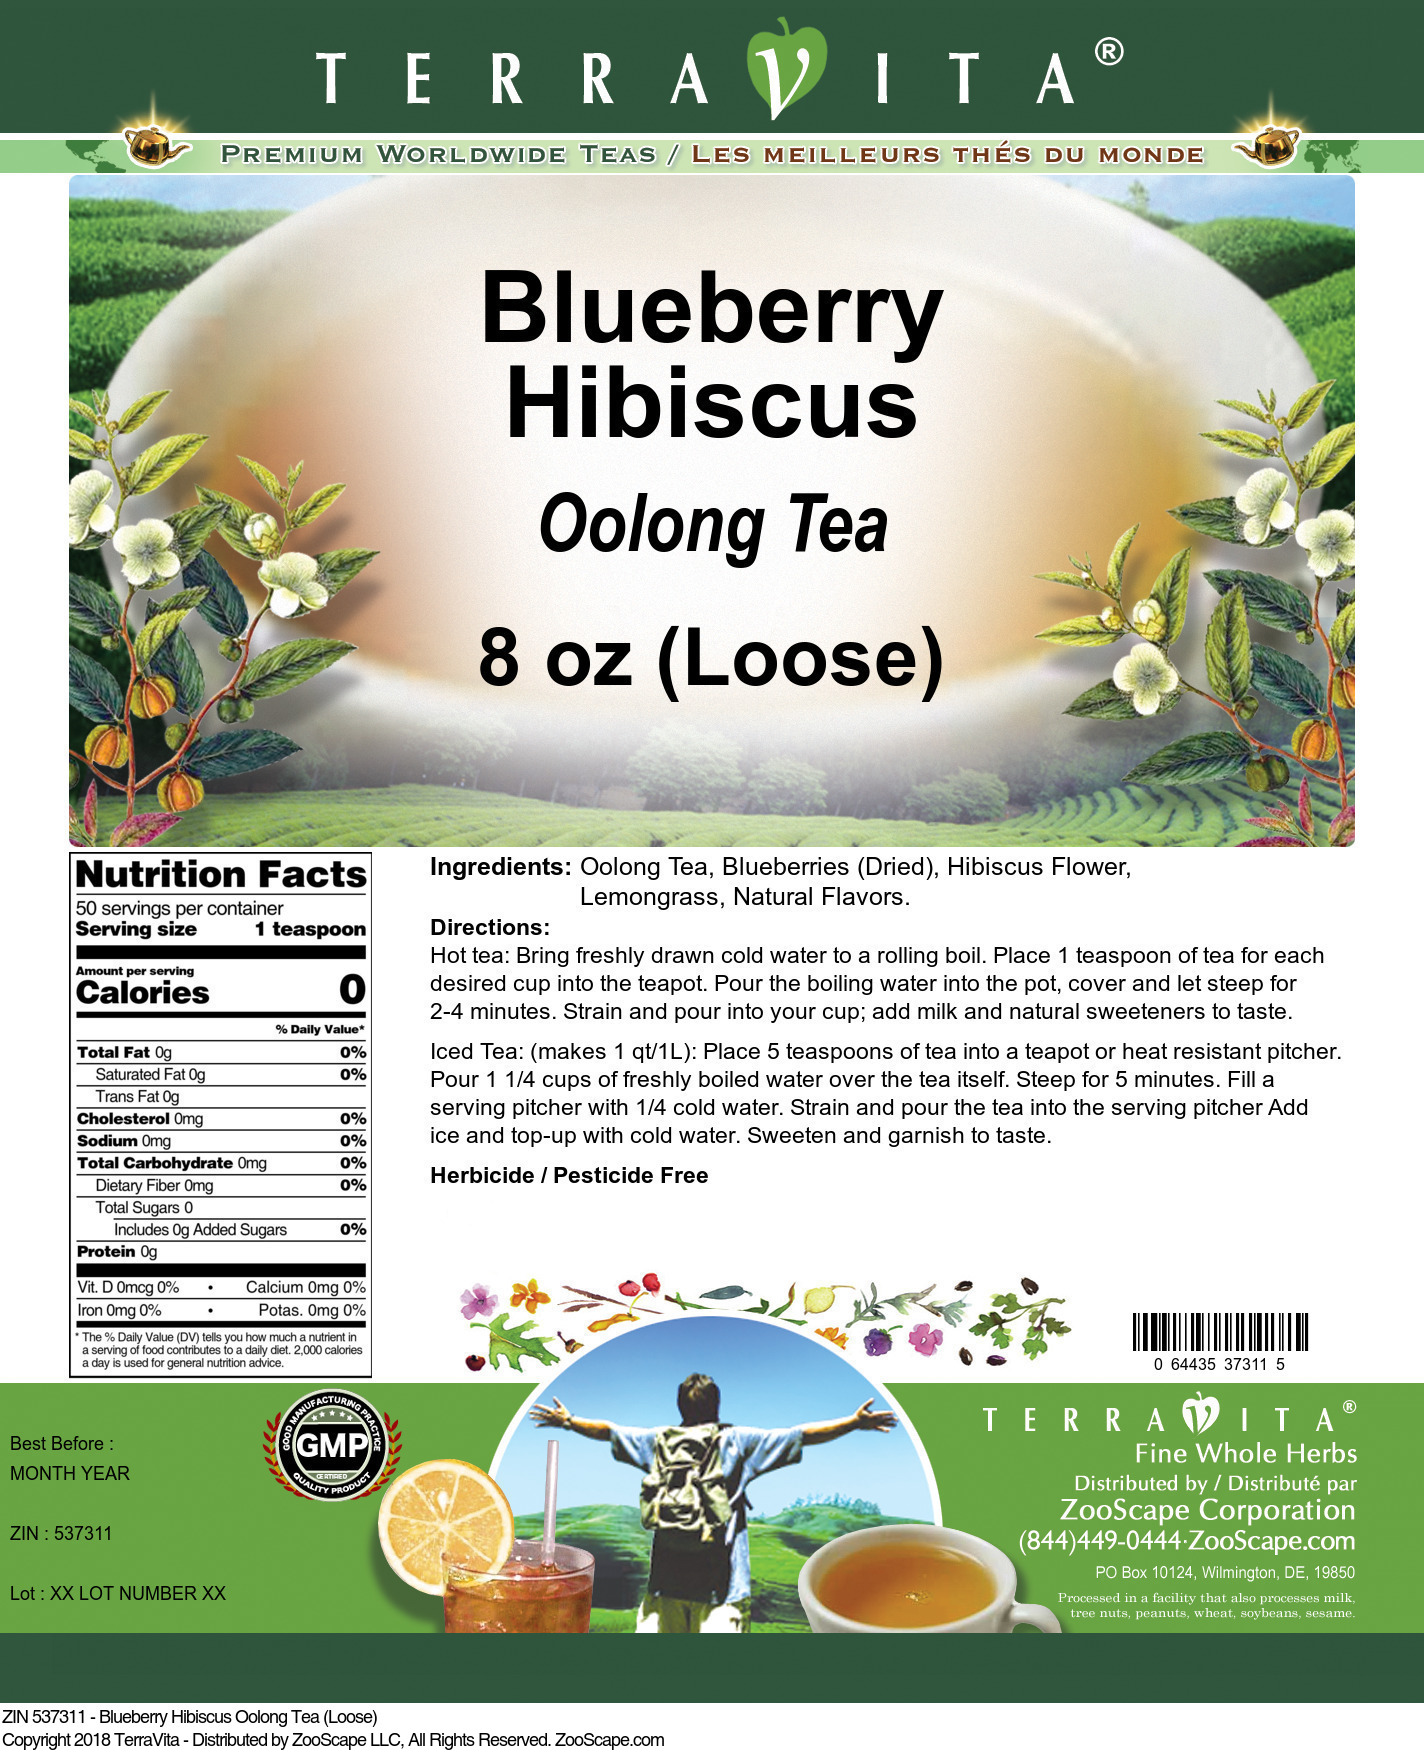 Blueberry Hibiscus Oolong Tea (Loose)